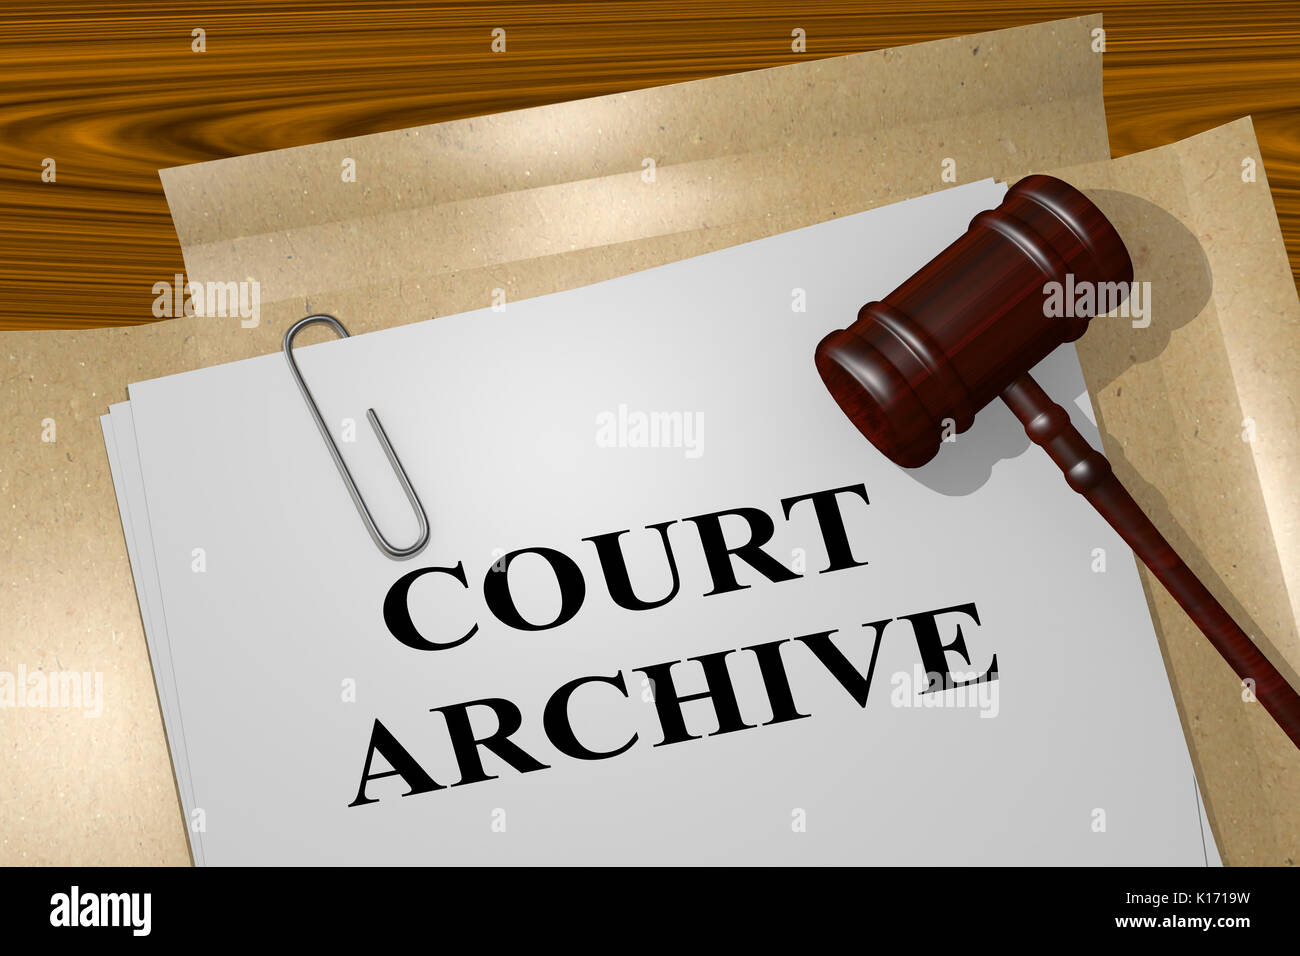 3D illustration of 'COURT ARCHIVE' title on legal document - Stock Image